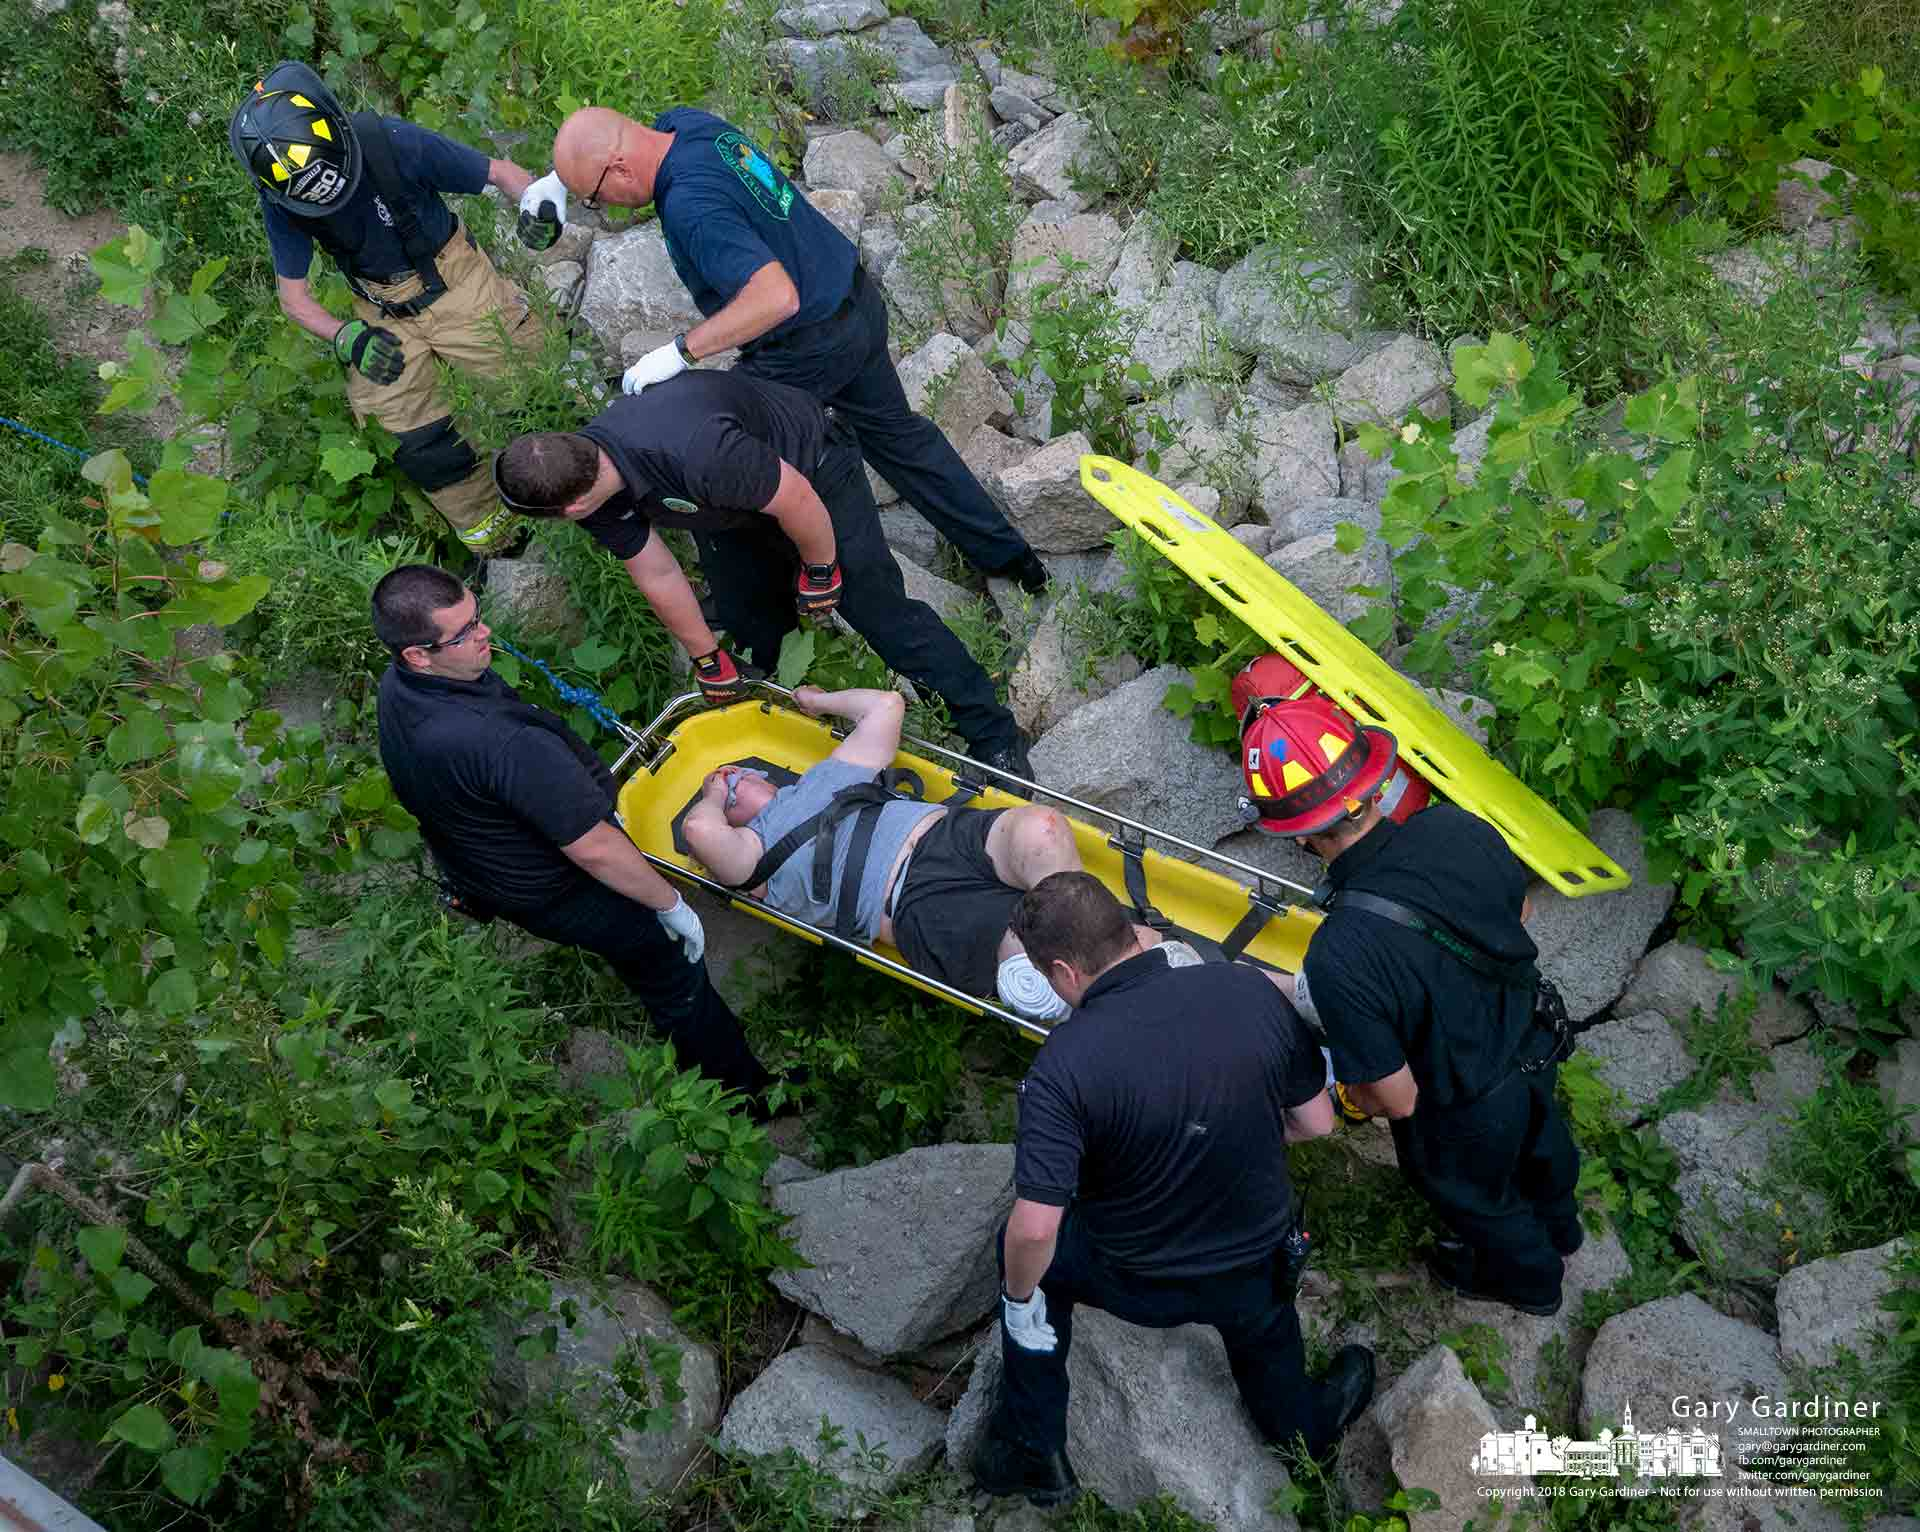 Delaware County first responders use a rescue gurney to carry a man from beneath the bridge over Big Walnut Creek in Galena. My Final Photo for July 7, 2018.